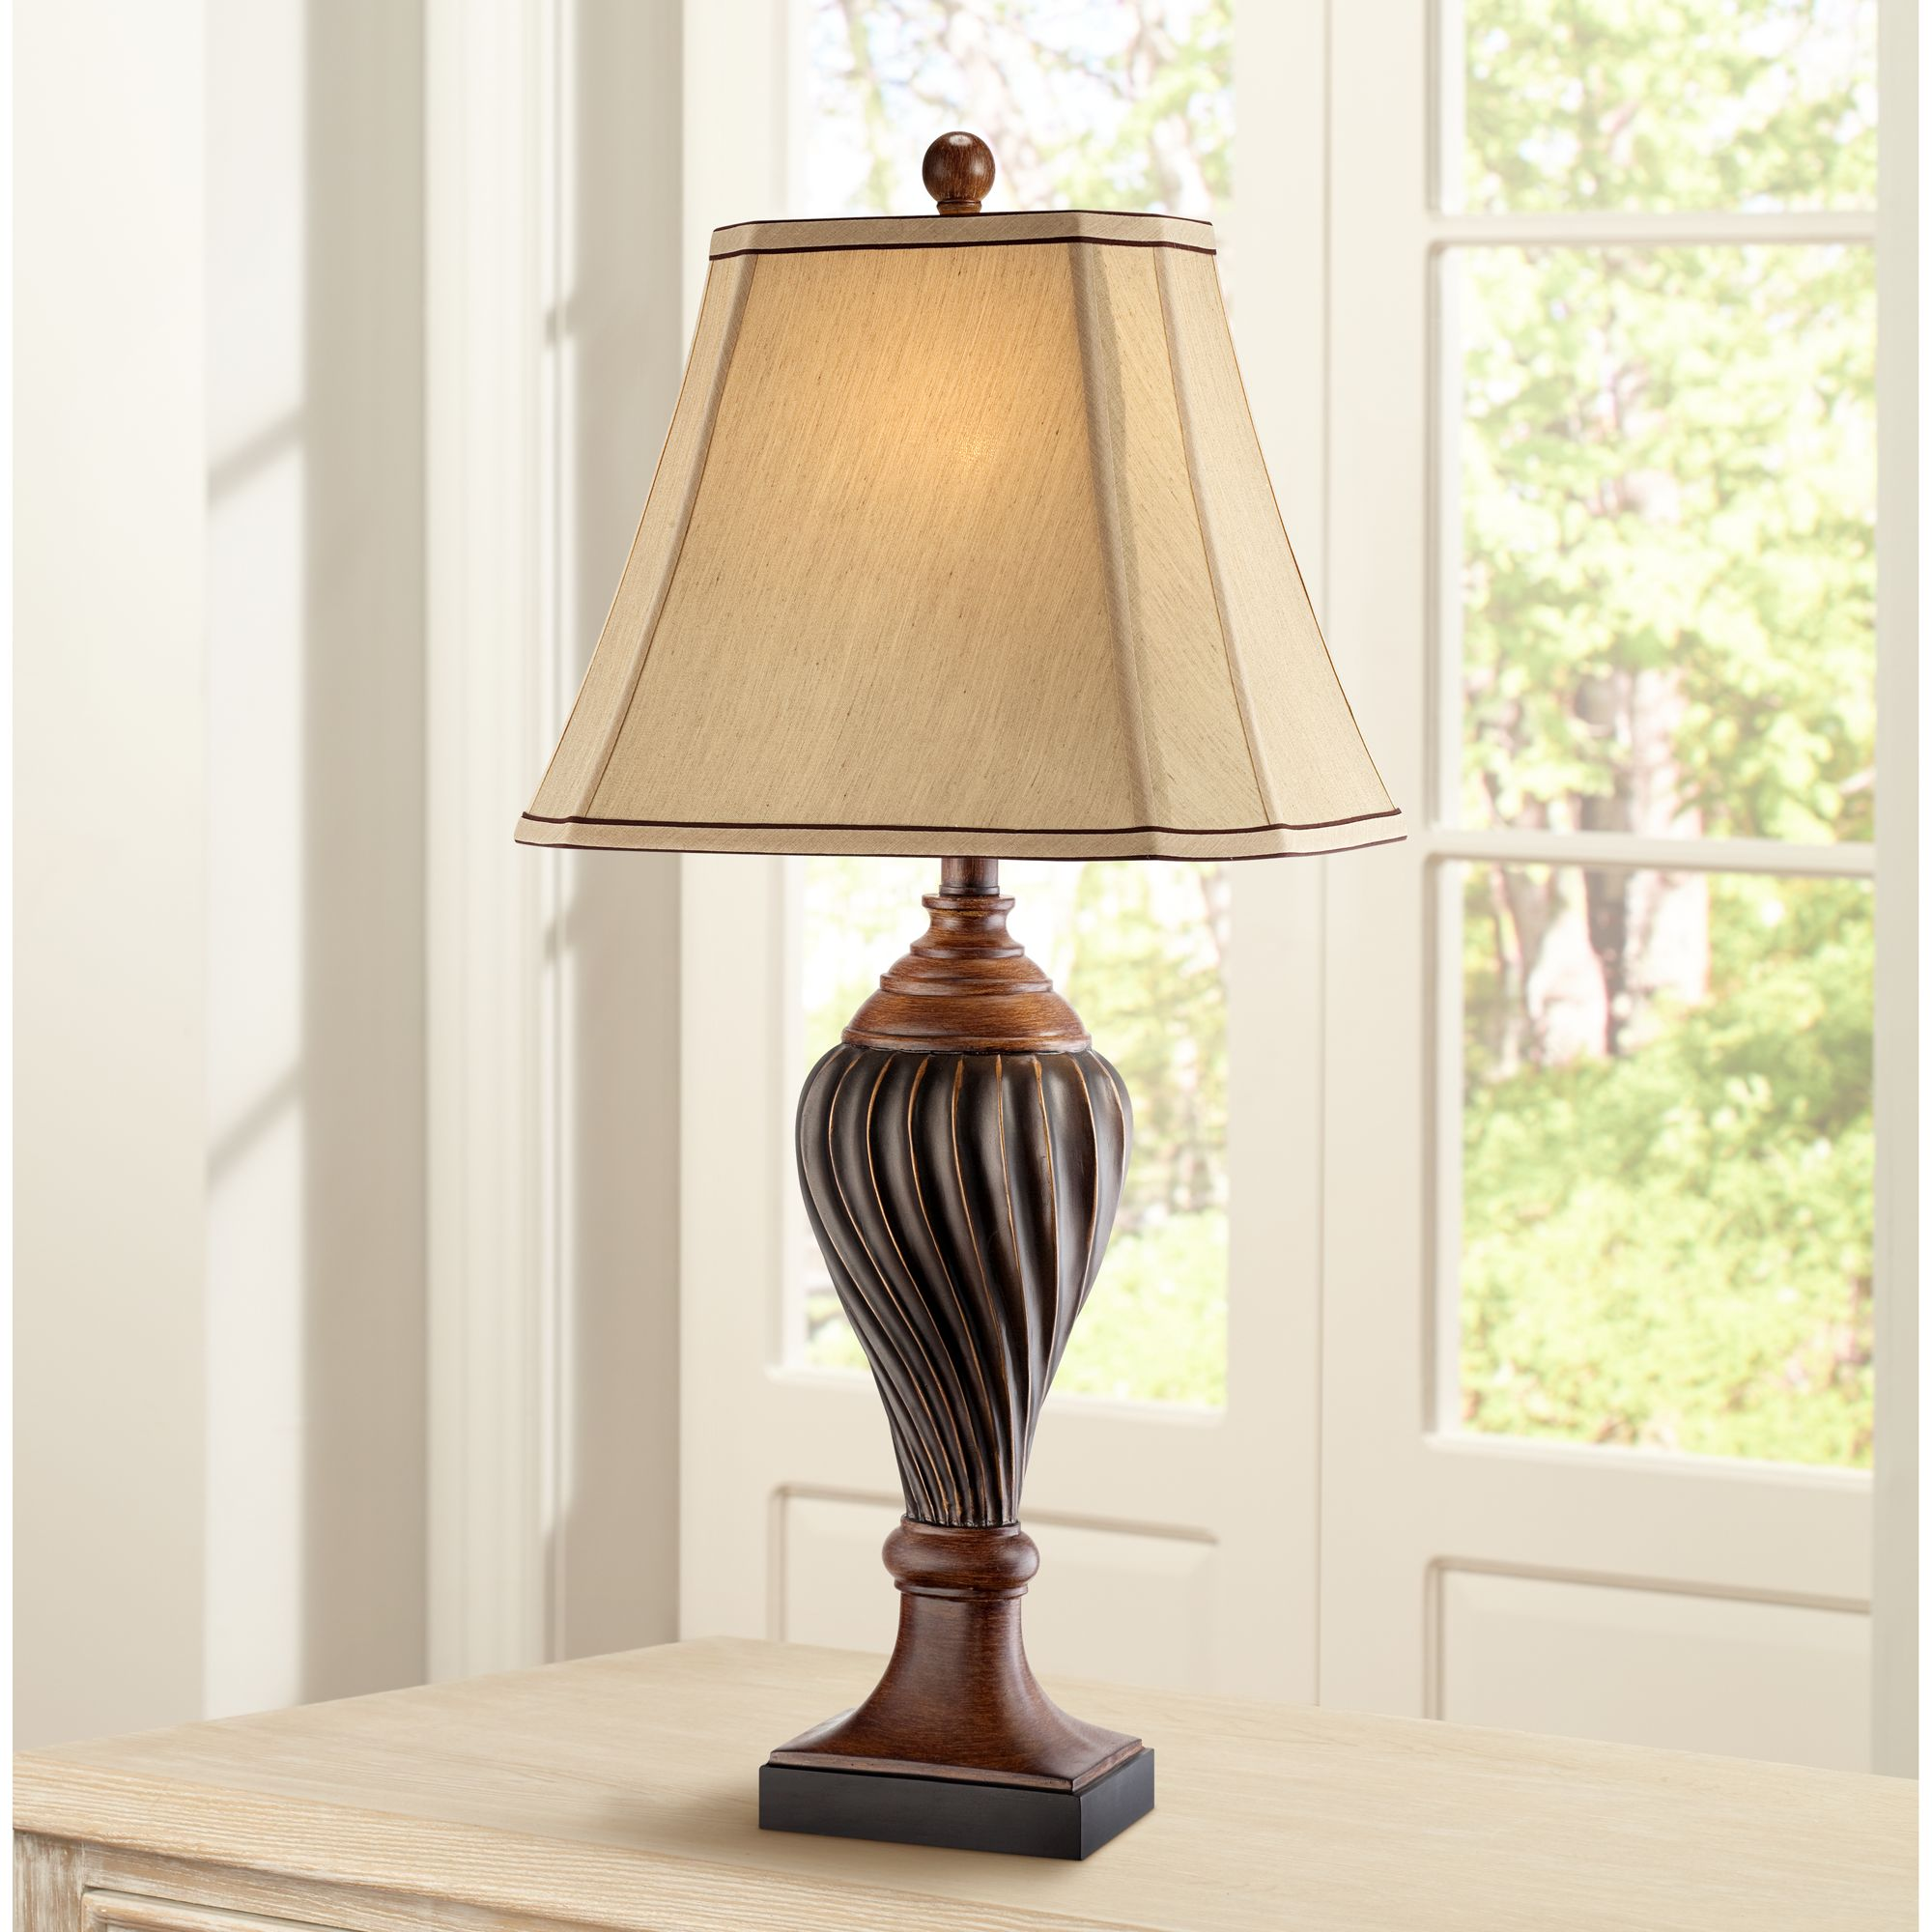 Regency Hill Traditional Table Lamp Carved Two Tone Brown Urn Shaped Beige Fabric Shade for Living Room Family Bedroom Bedside